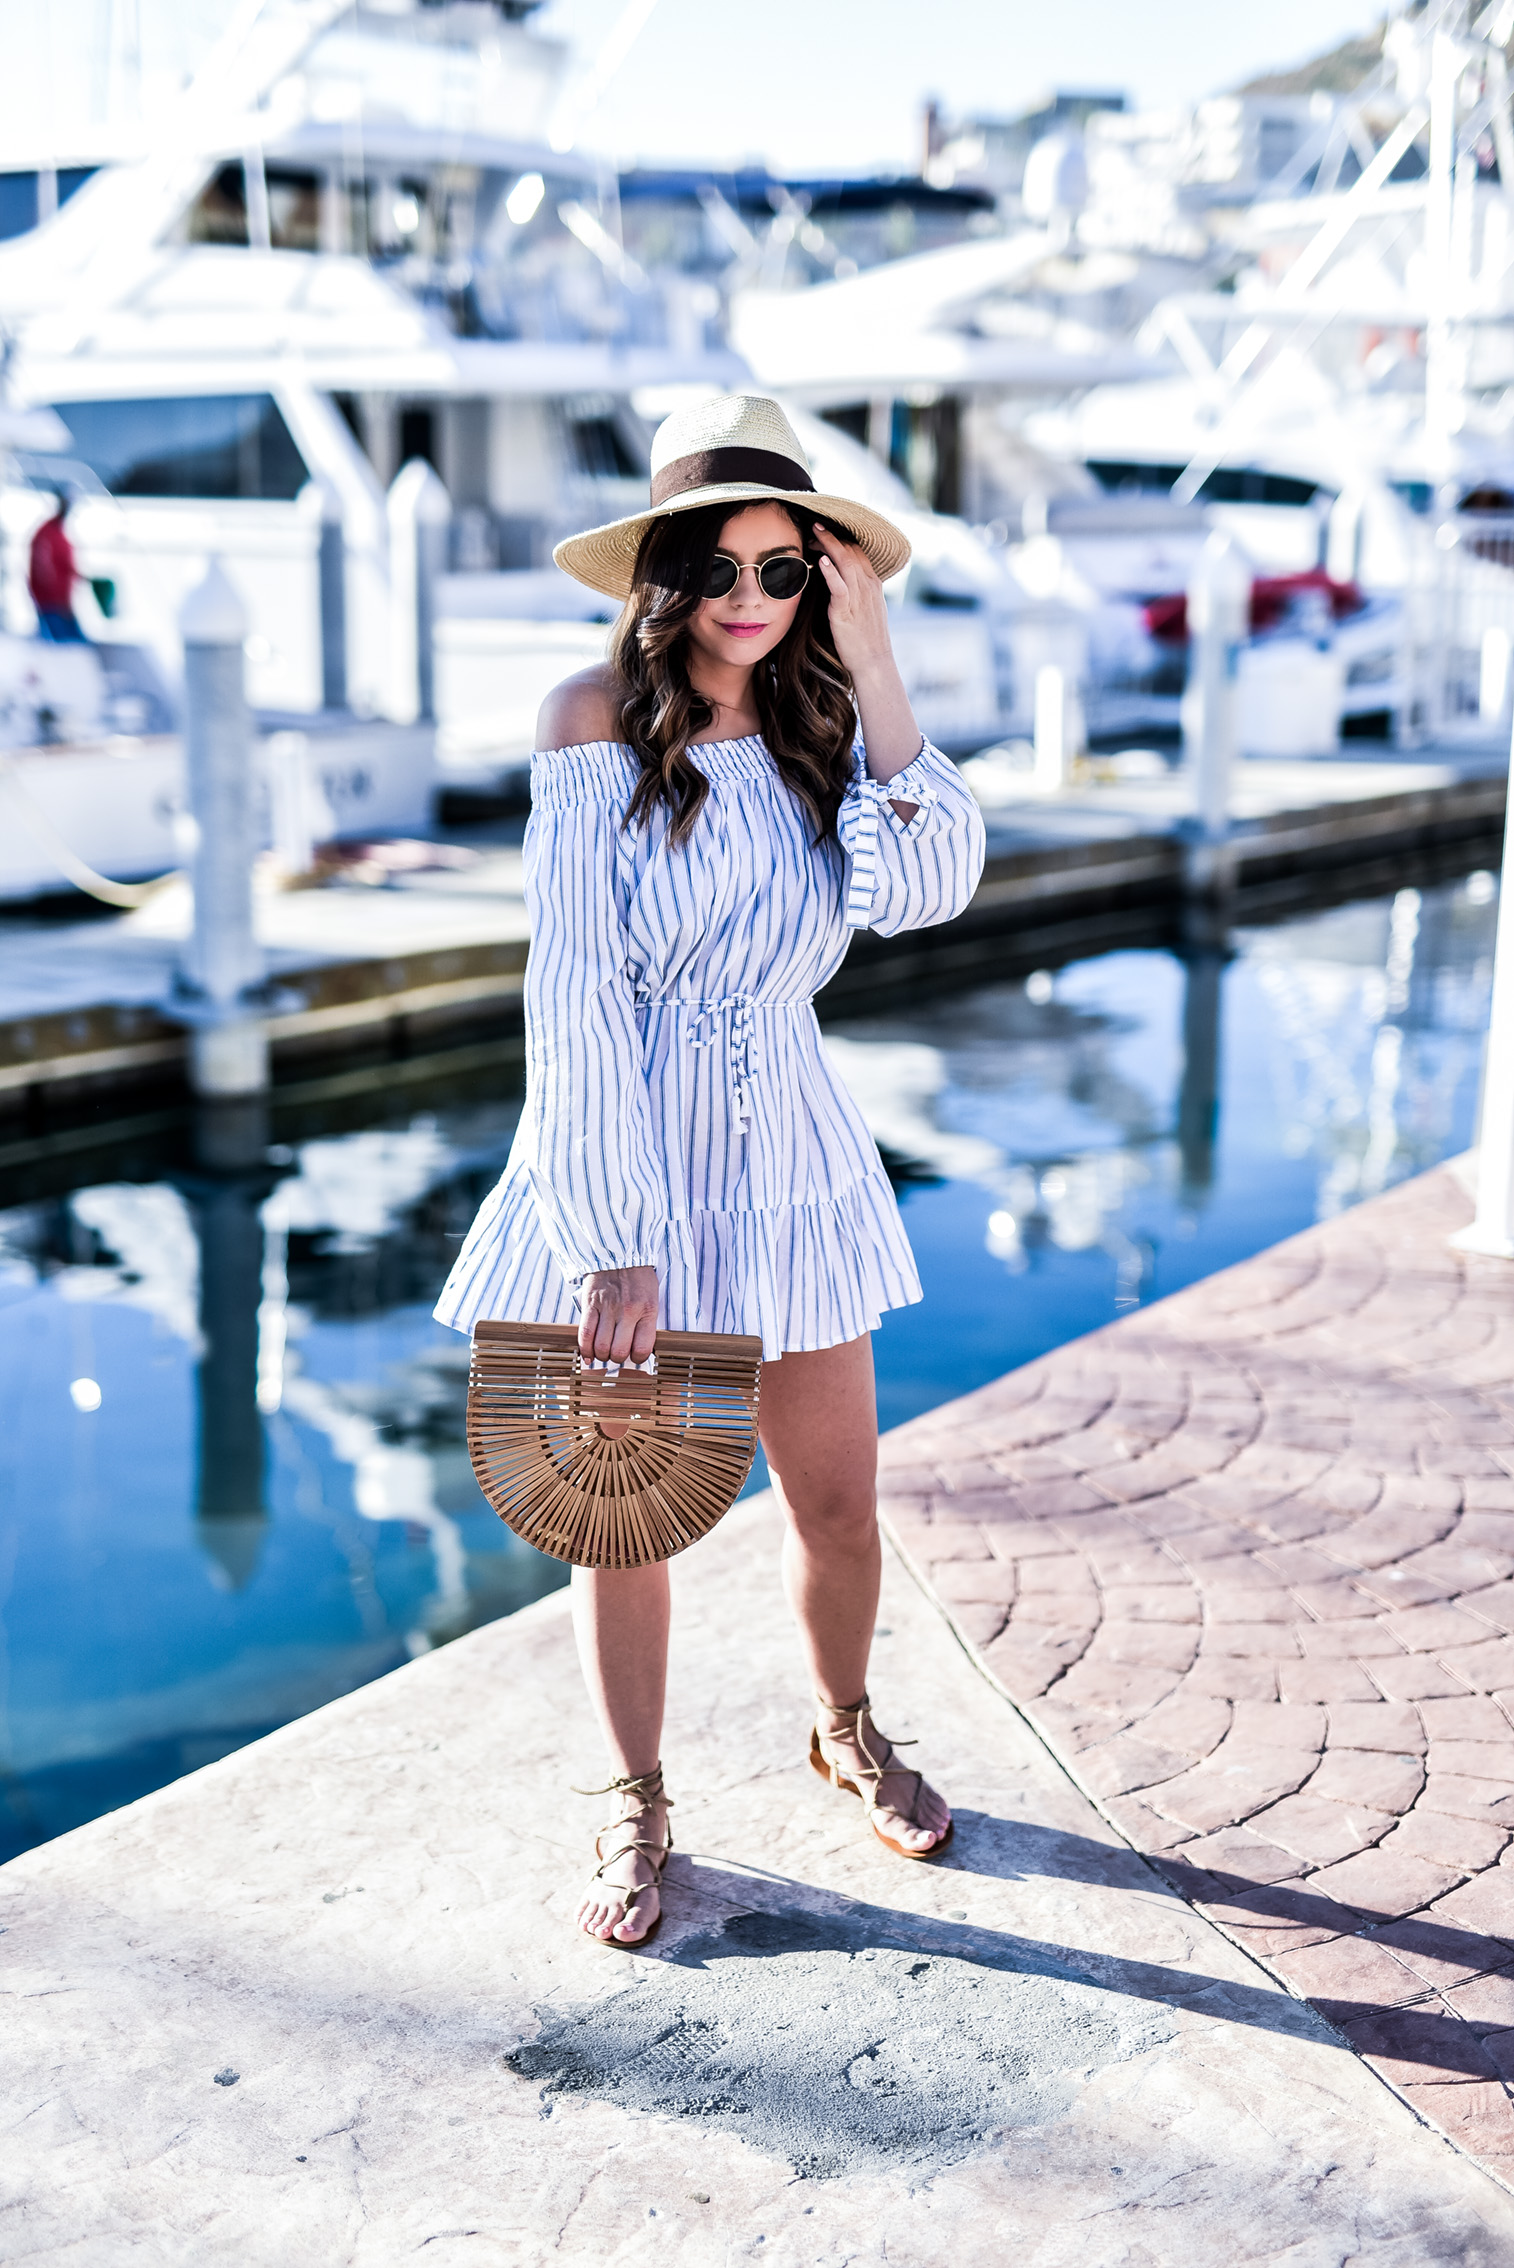 Loving this stripped dress for vacation, click to shop the look! | Houston fashion blogger, Cabo San Lucas, Stripped dress, Outfit ideas for spring 2017, Cabo San Lucas travel